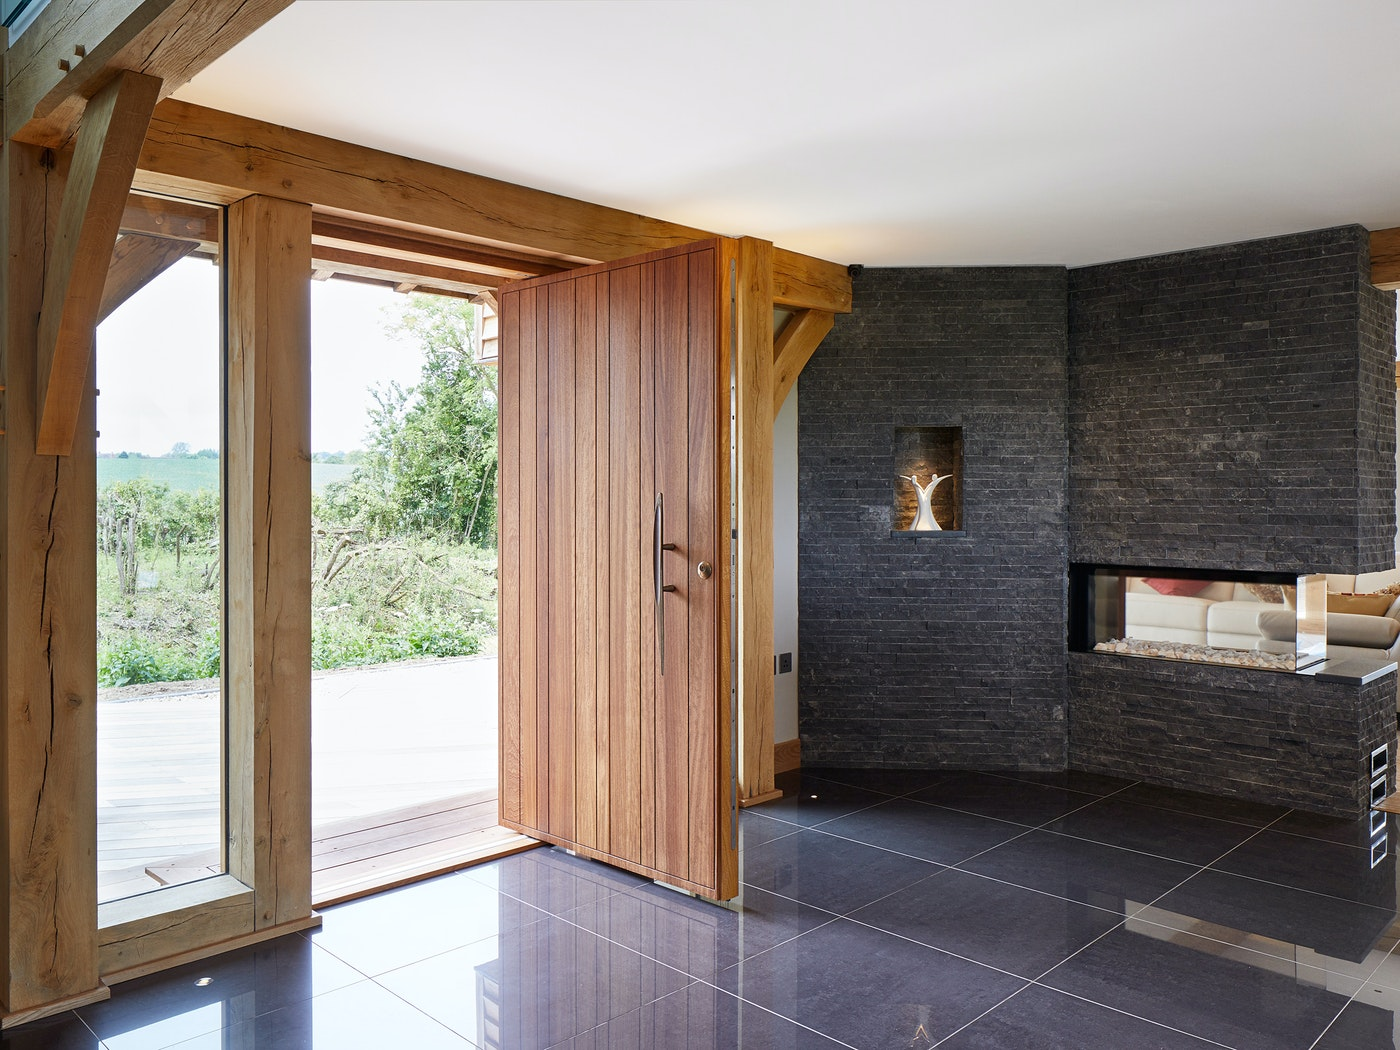 The interior style is more contemporary